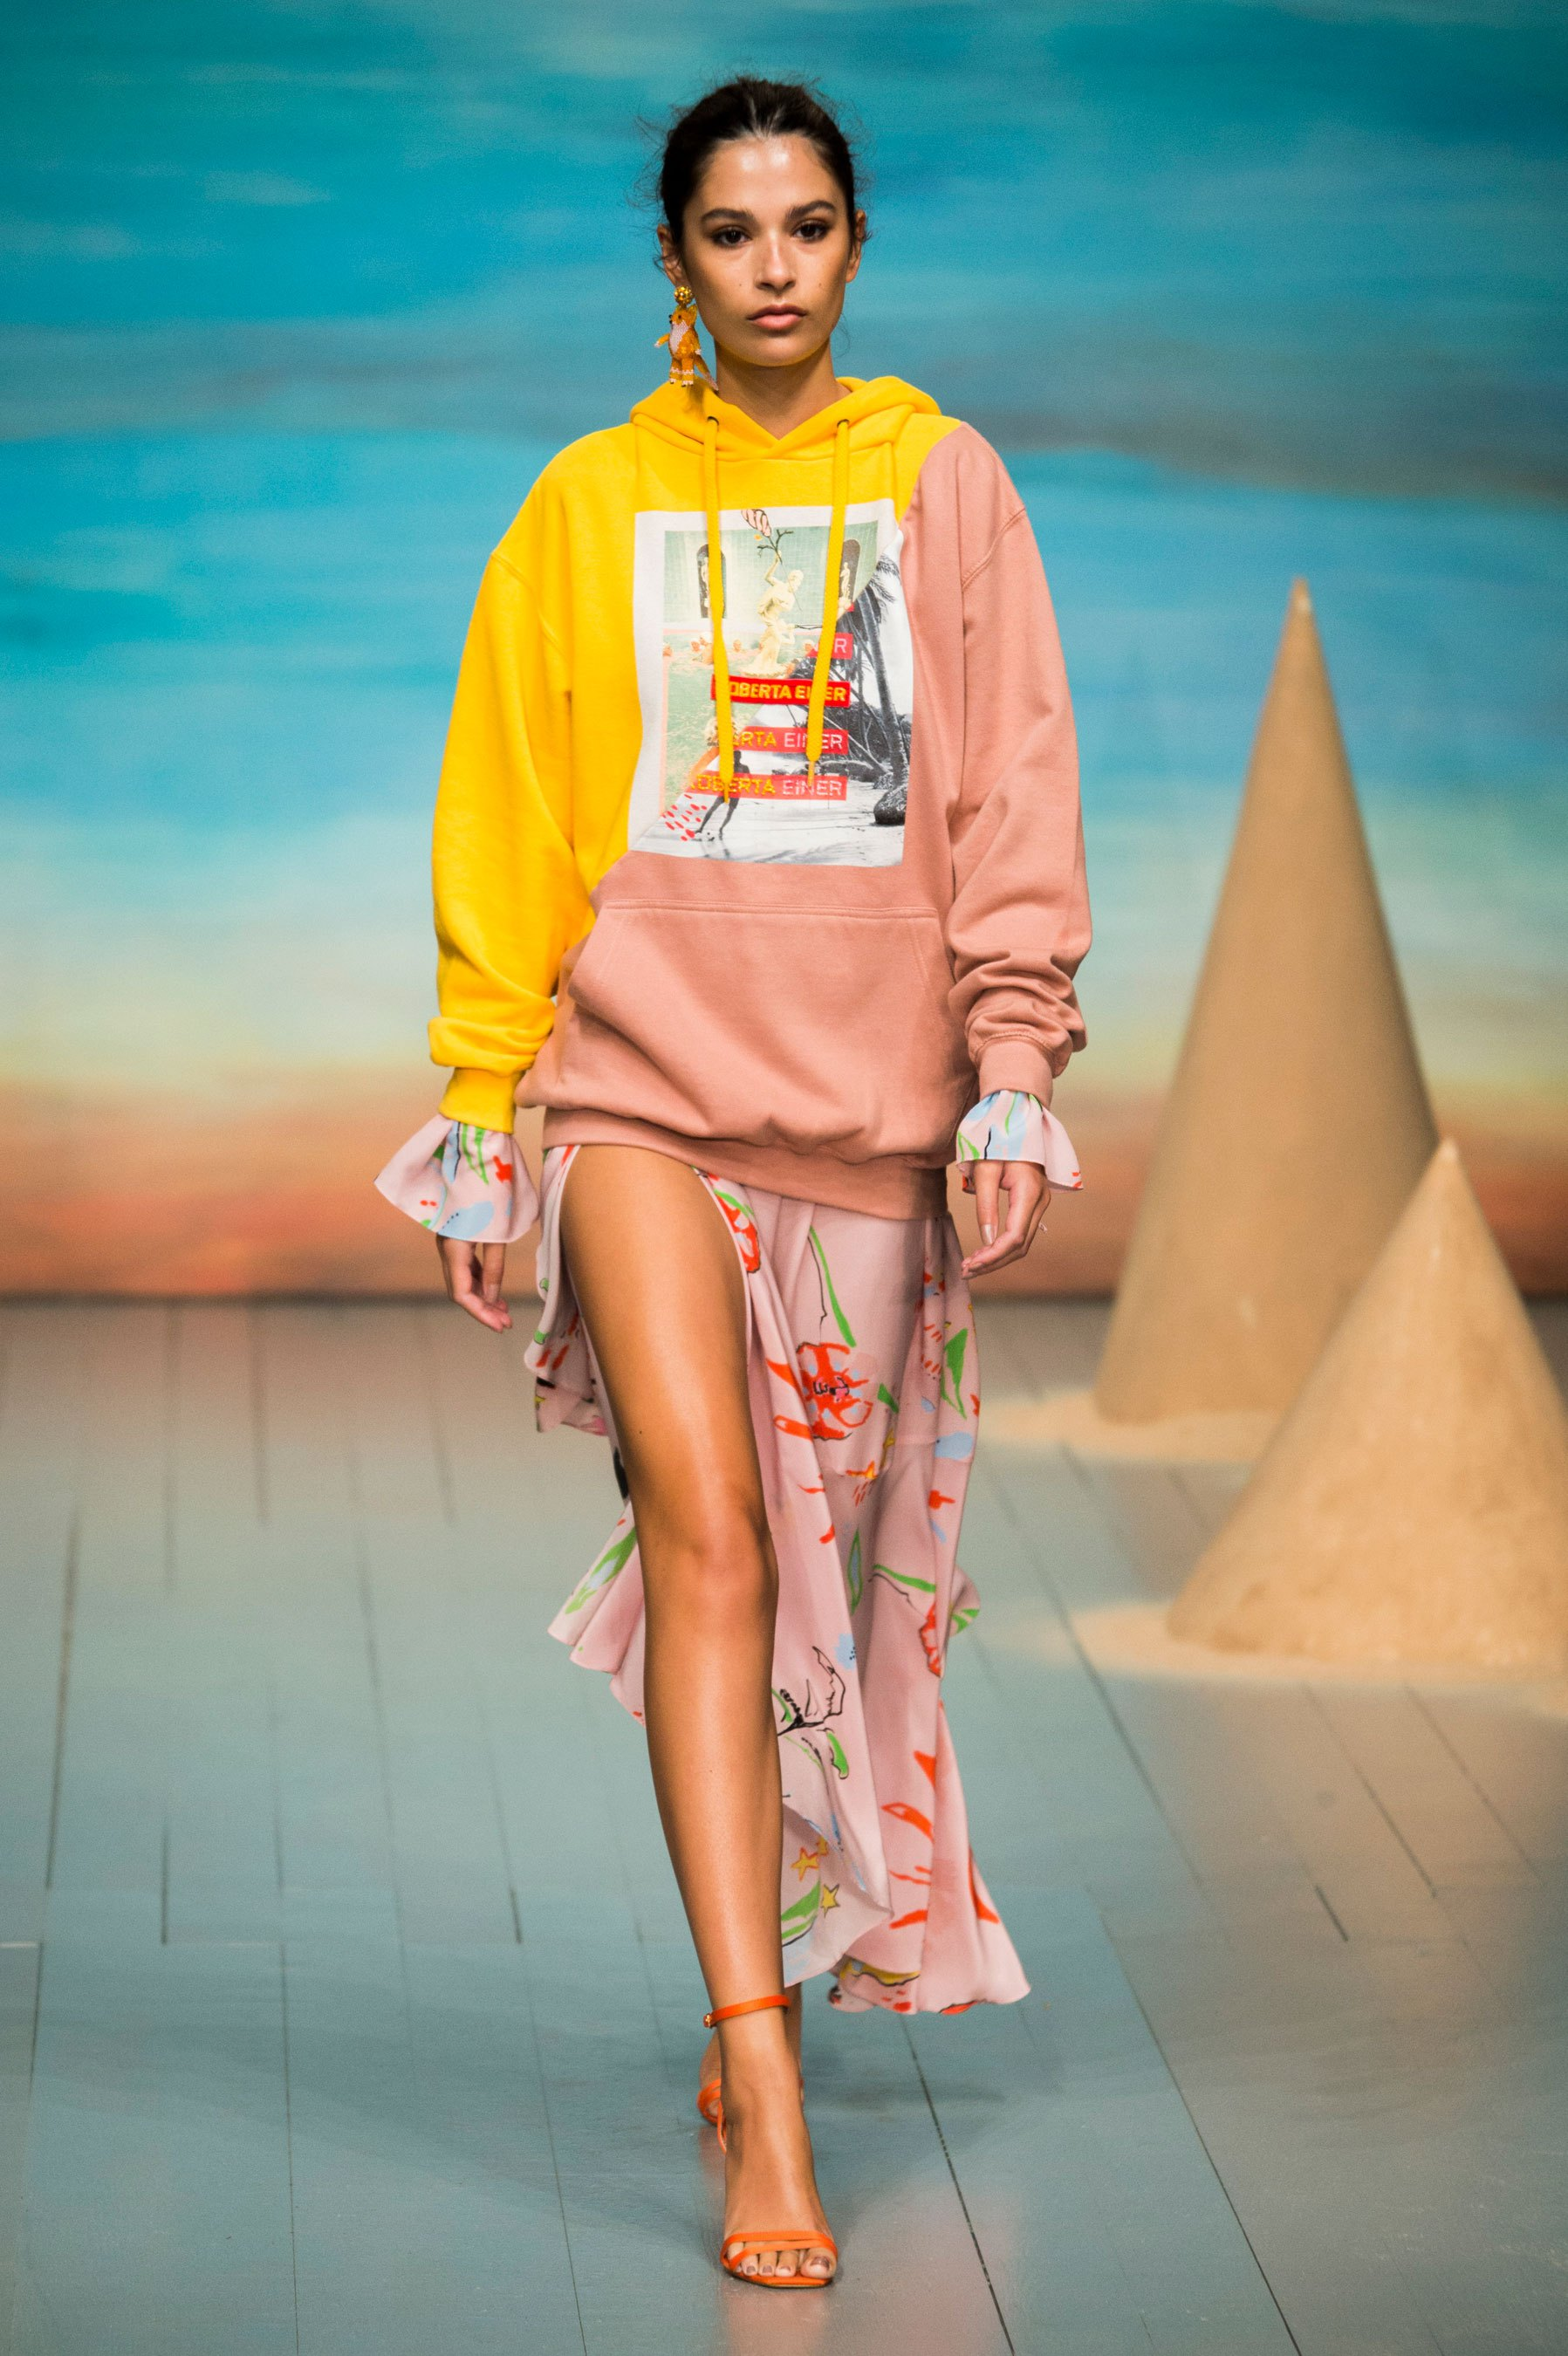 Top 5 Other London Spring 2019 Collections and Fashion Shows